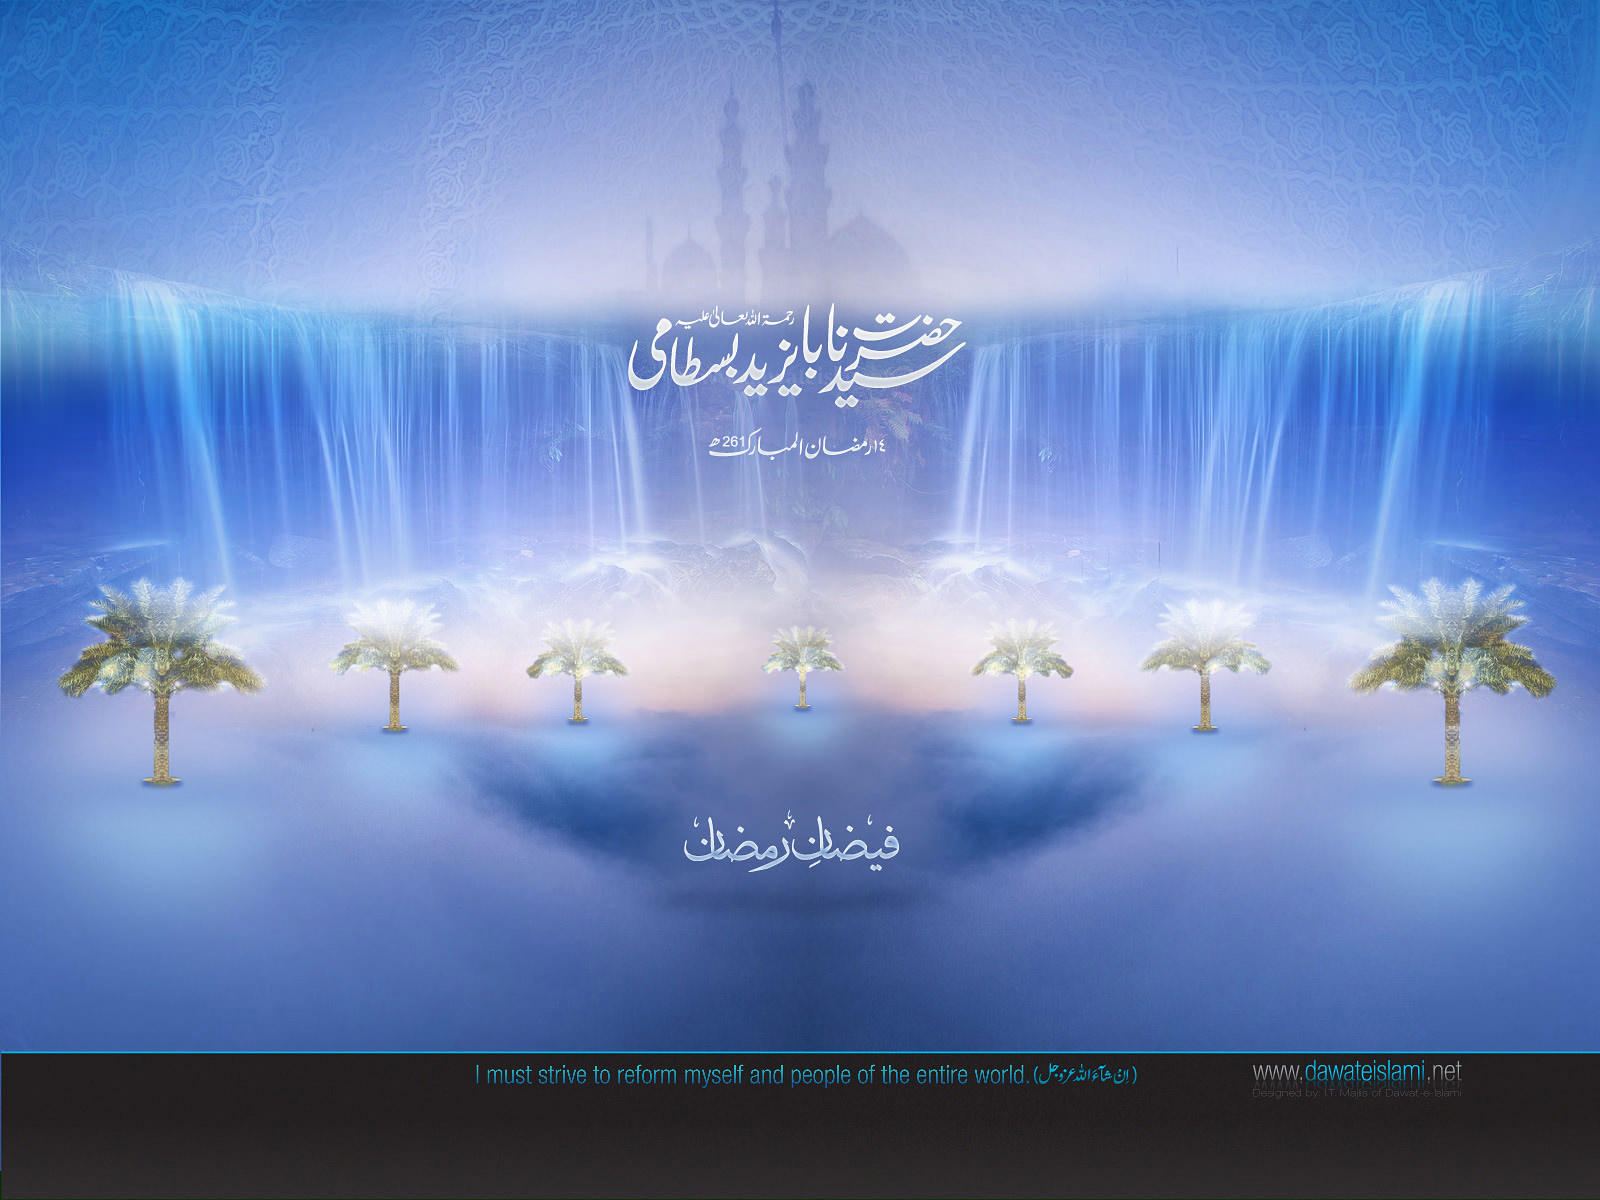 Wallpapers Faizan e Ramadan 28